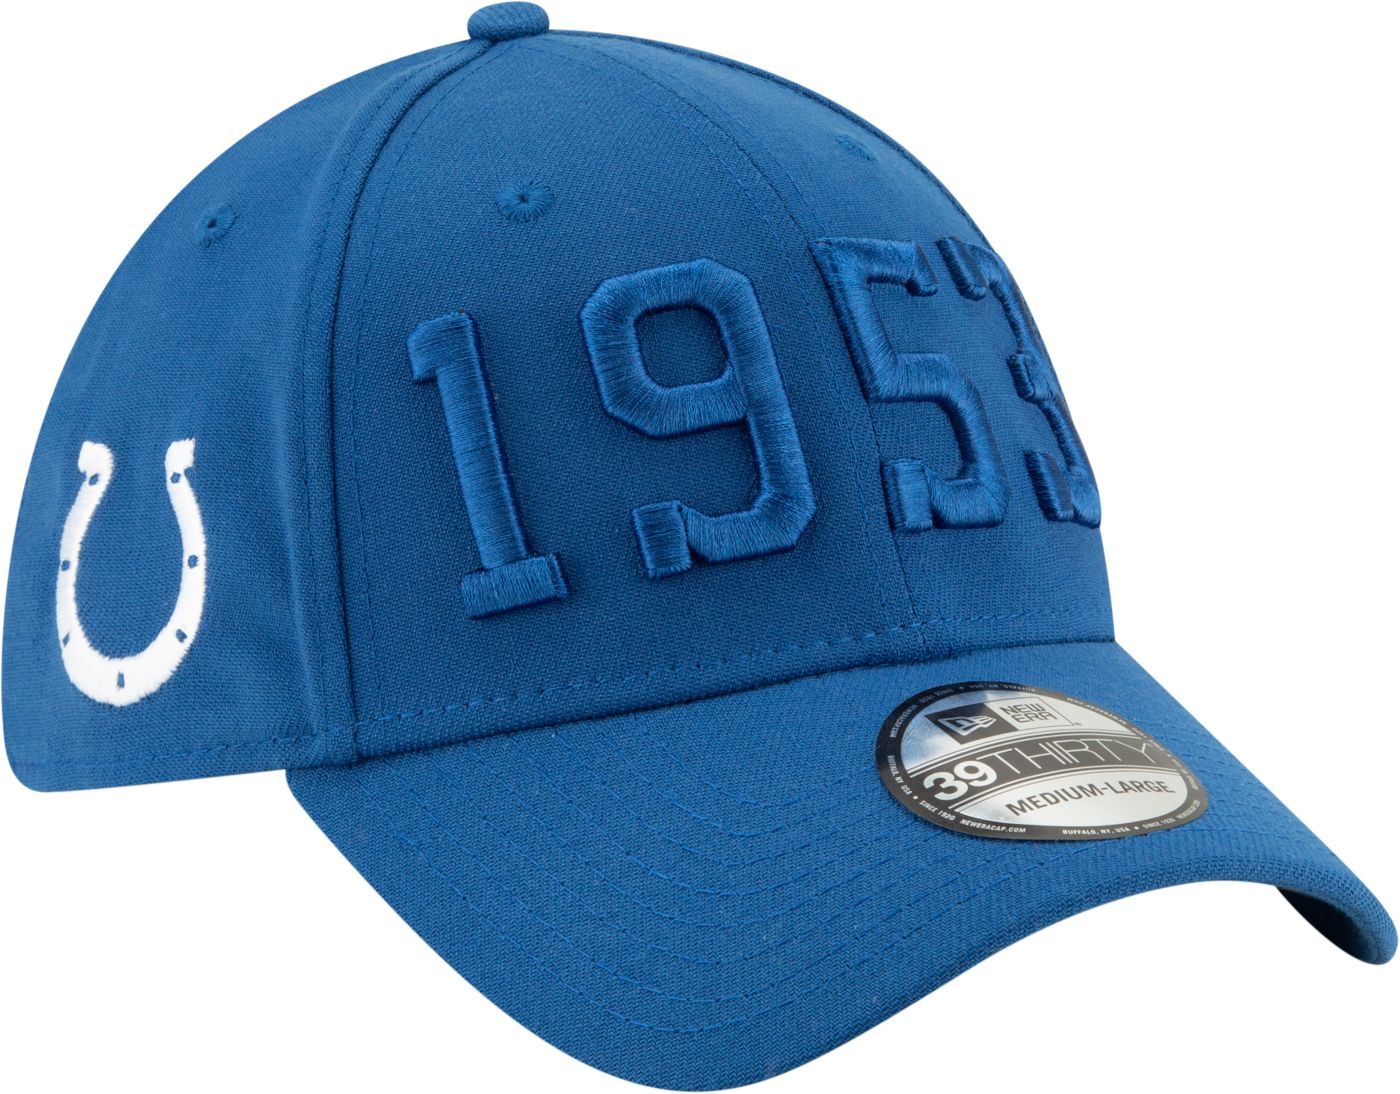 New Era Men's Indianapolis Colts Sideline Color Rush 39Thirty Stretch Fit Hat